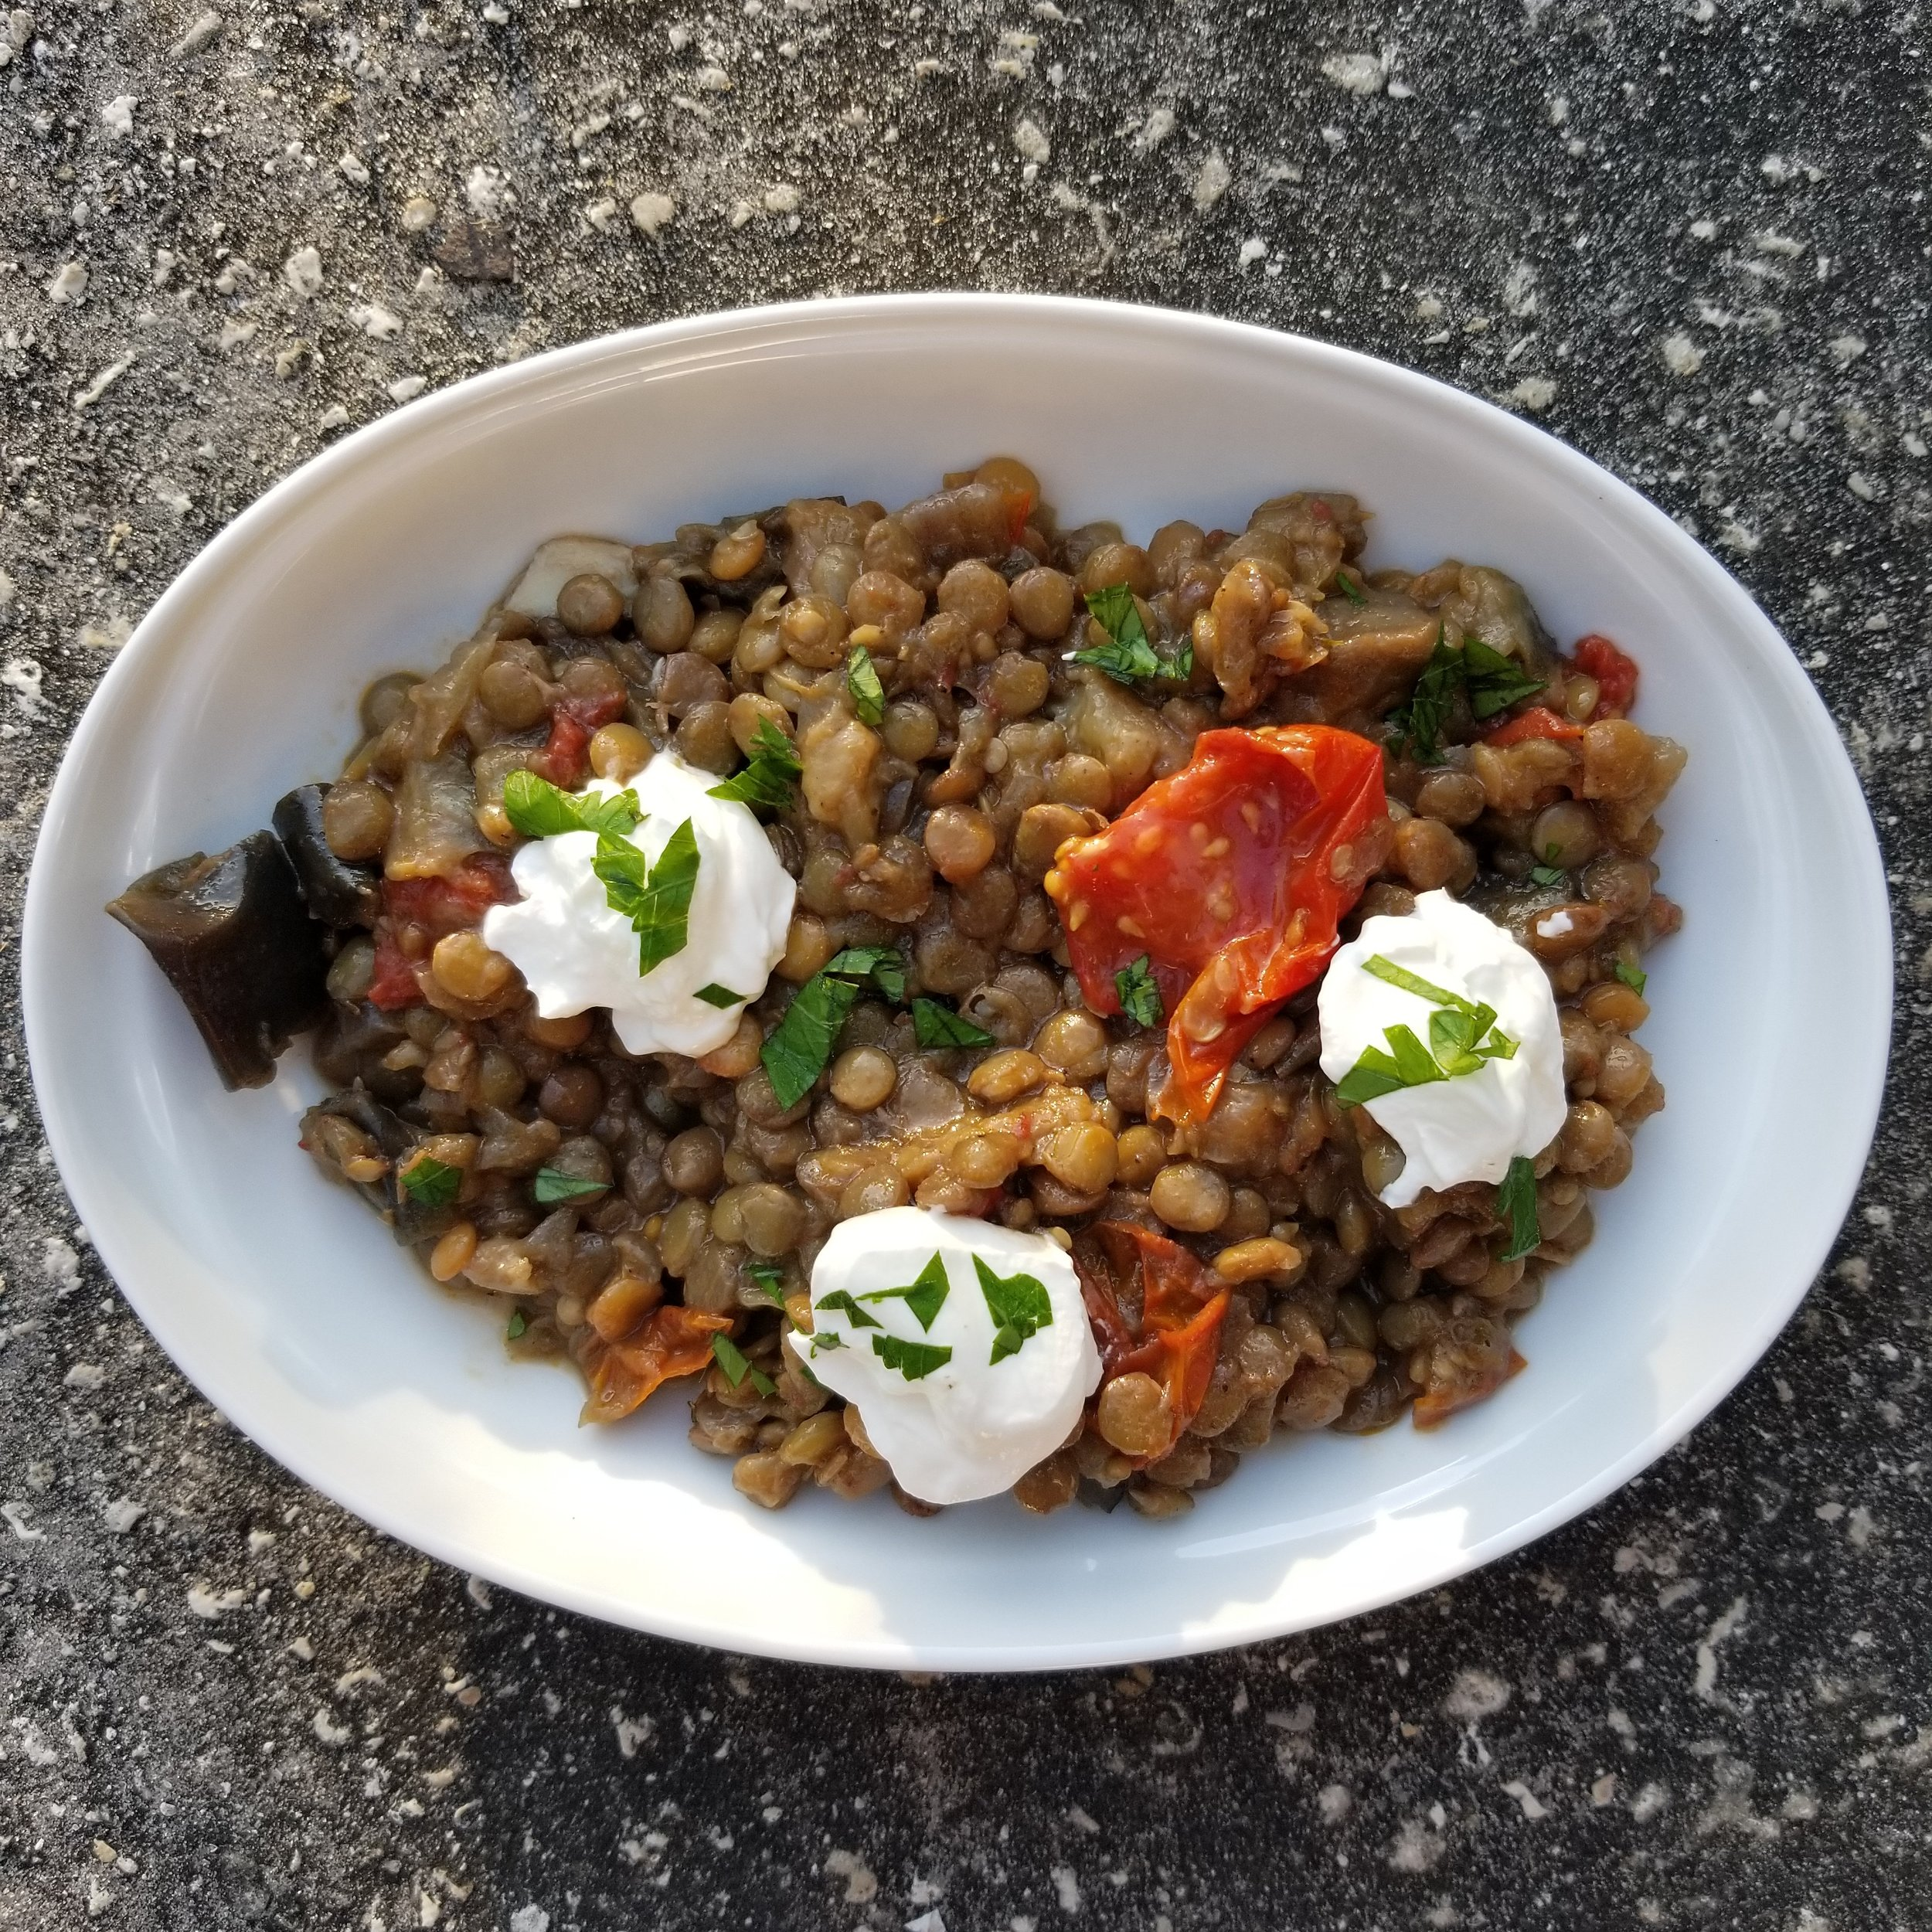 Lentils are a carbohydrate, so they do effect blood sugar.  But they have TONS of fiber which is super beneficial for blood sugar control.  Definitely a food to include.